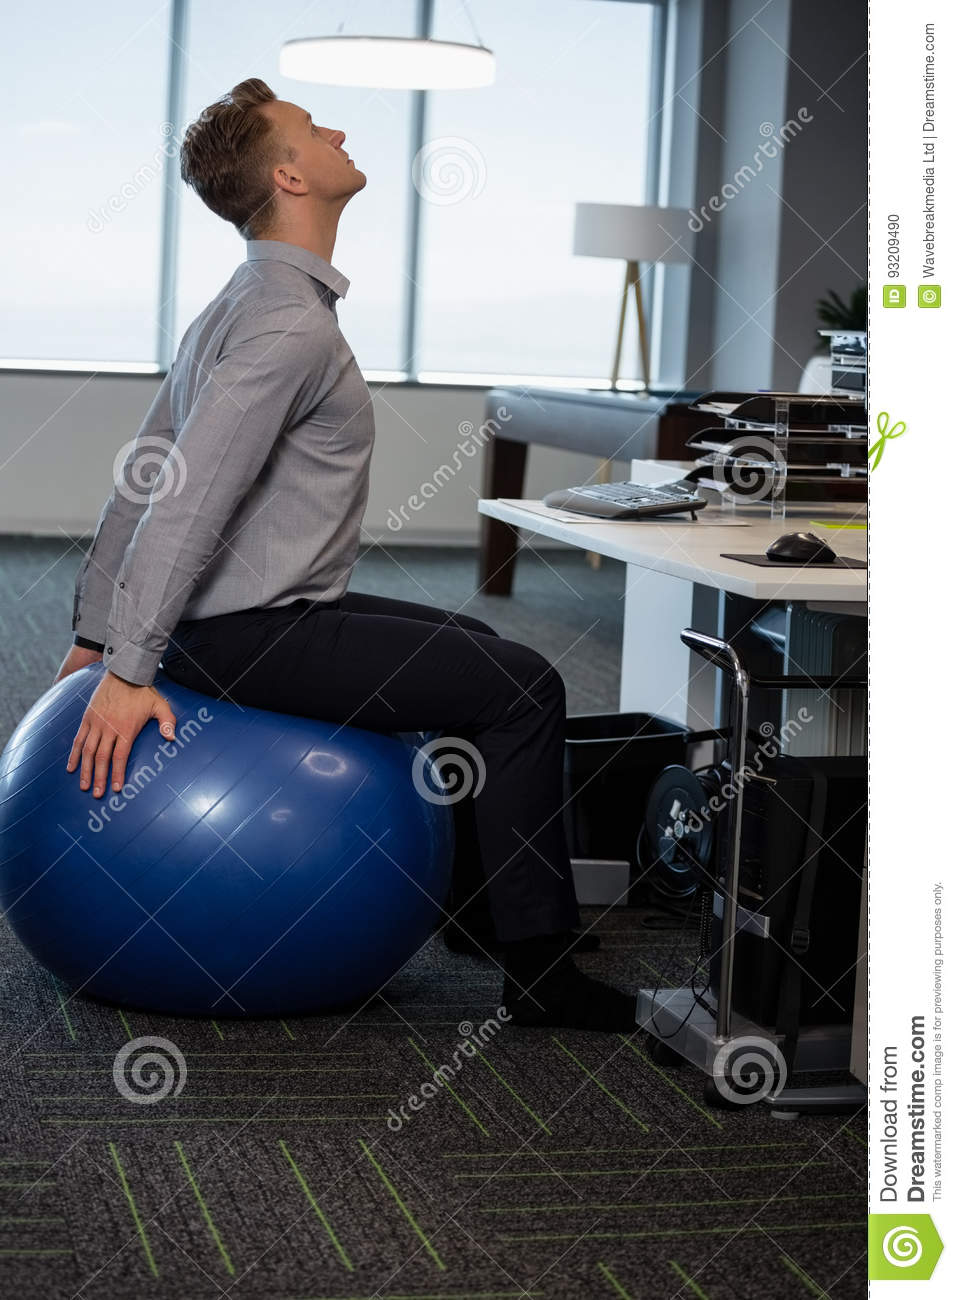 1 050 Ball Exercise Office Photos Free Royalty Free Stock Photos From Dreamstime